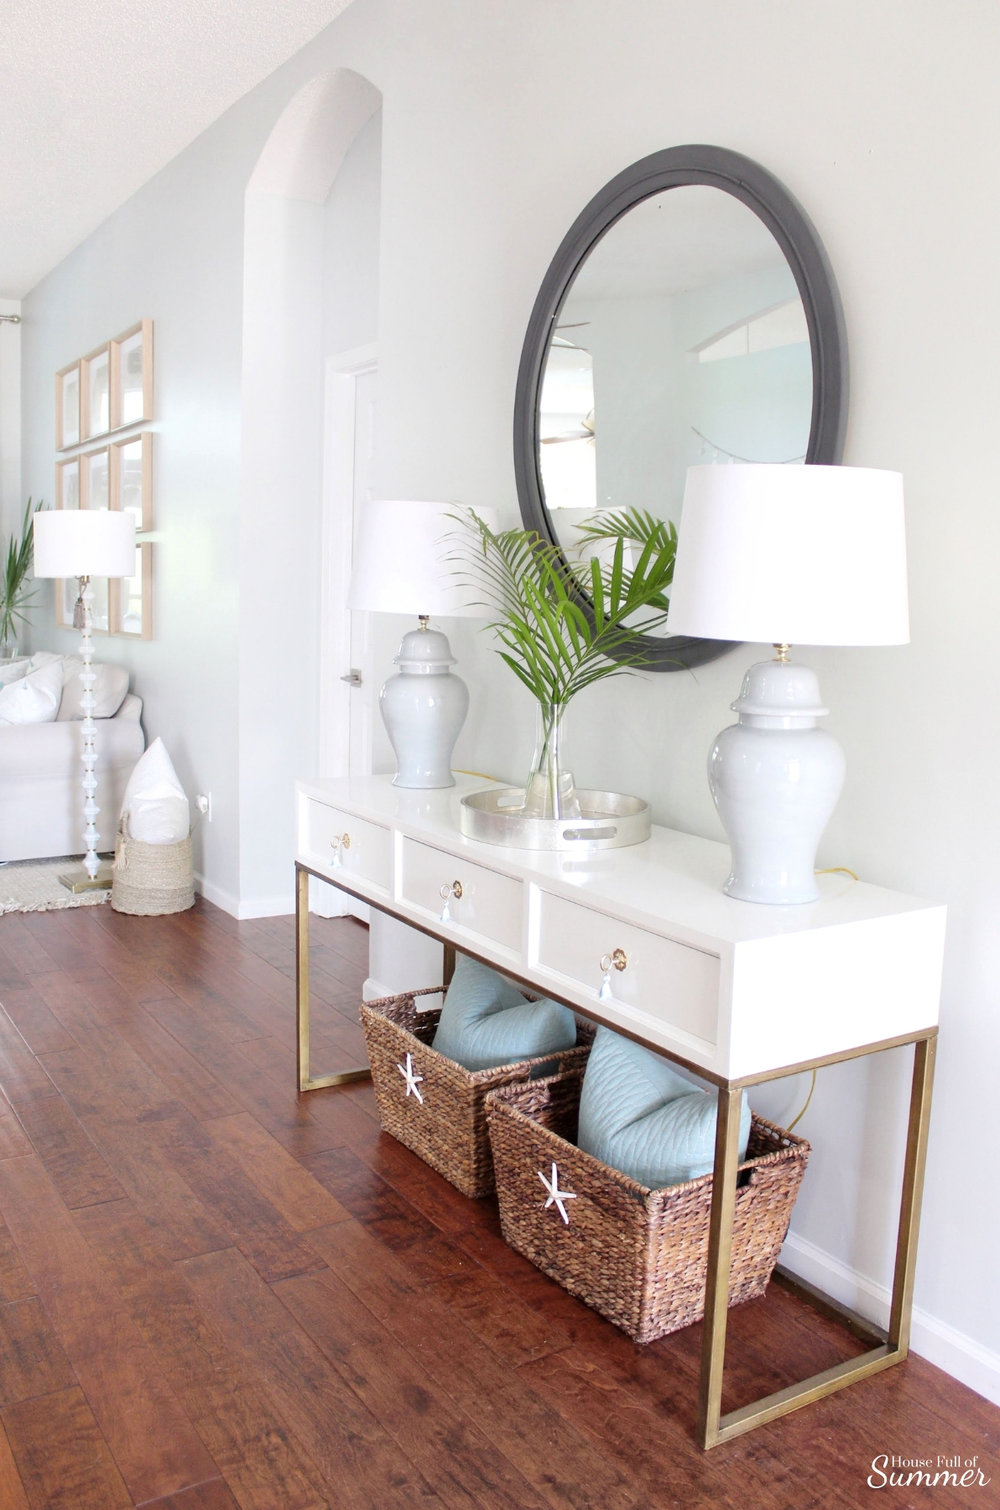 Adding Spring Color to the Living Room and Foyer | House Full of Summer - spring decor, coastal decor, neutral interior, turquoise accents, console table, round mirror, fiddle leaf fig, decorating with palm fronds, entryway, lighting, Florida home decor ideas, slip covered furniture, jute rug, beach house style, cane bar cart, DIY spray paint, budget decor, rattan bar cart, bamboo cart, accent table, spring home tour